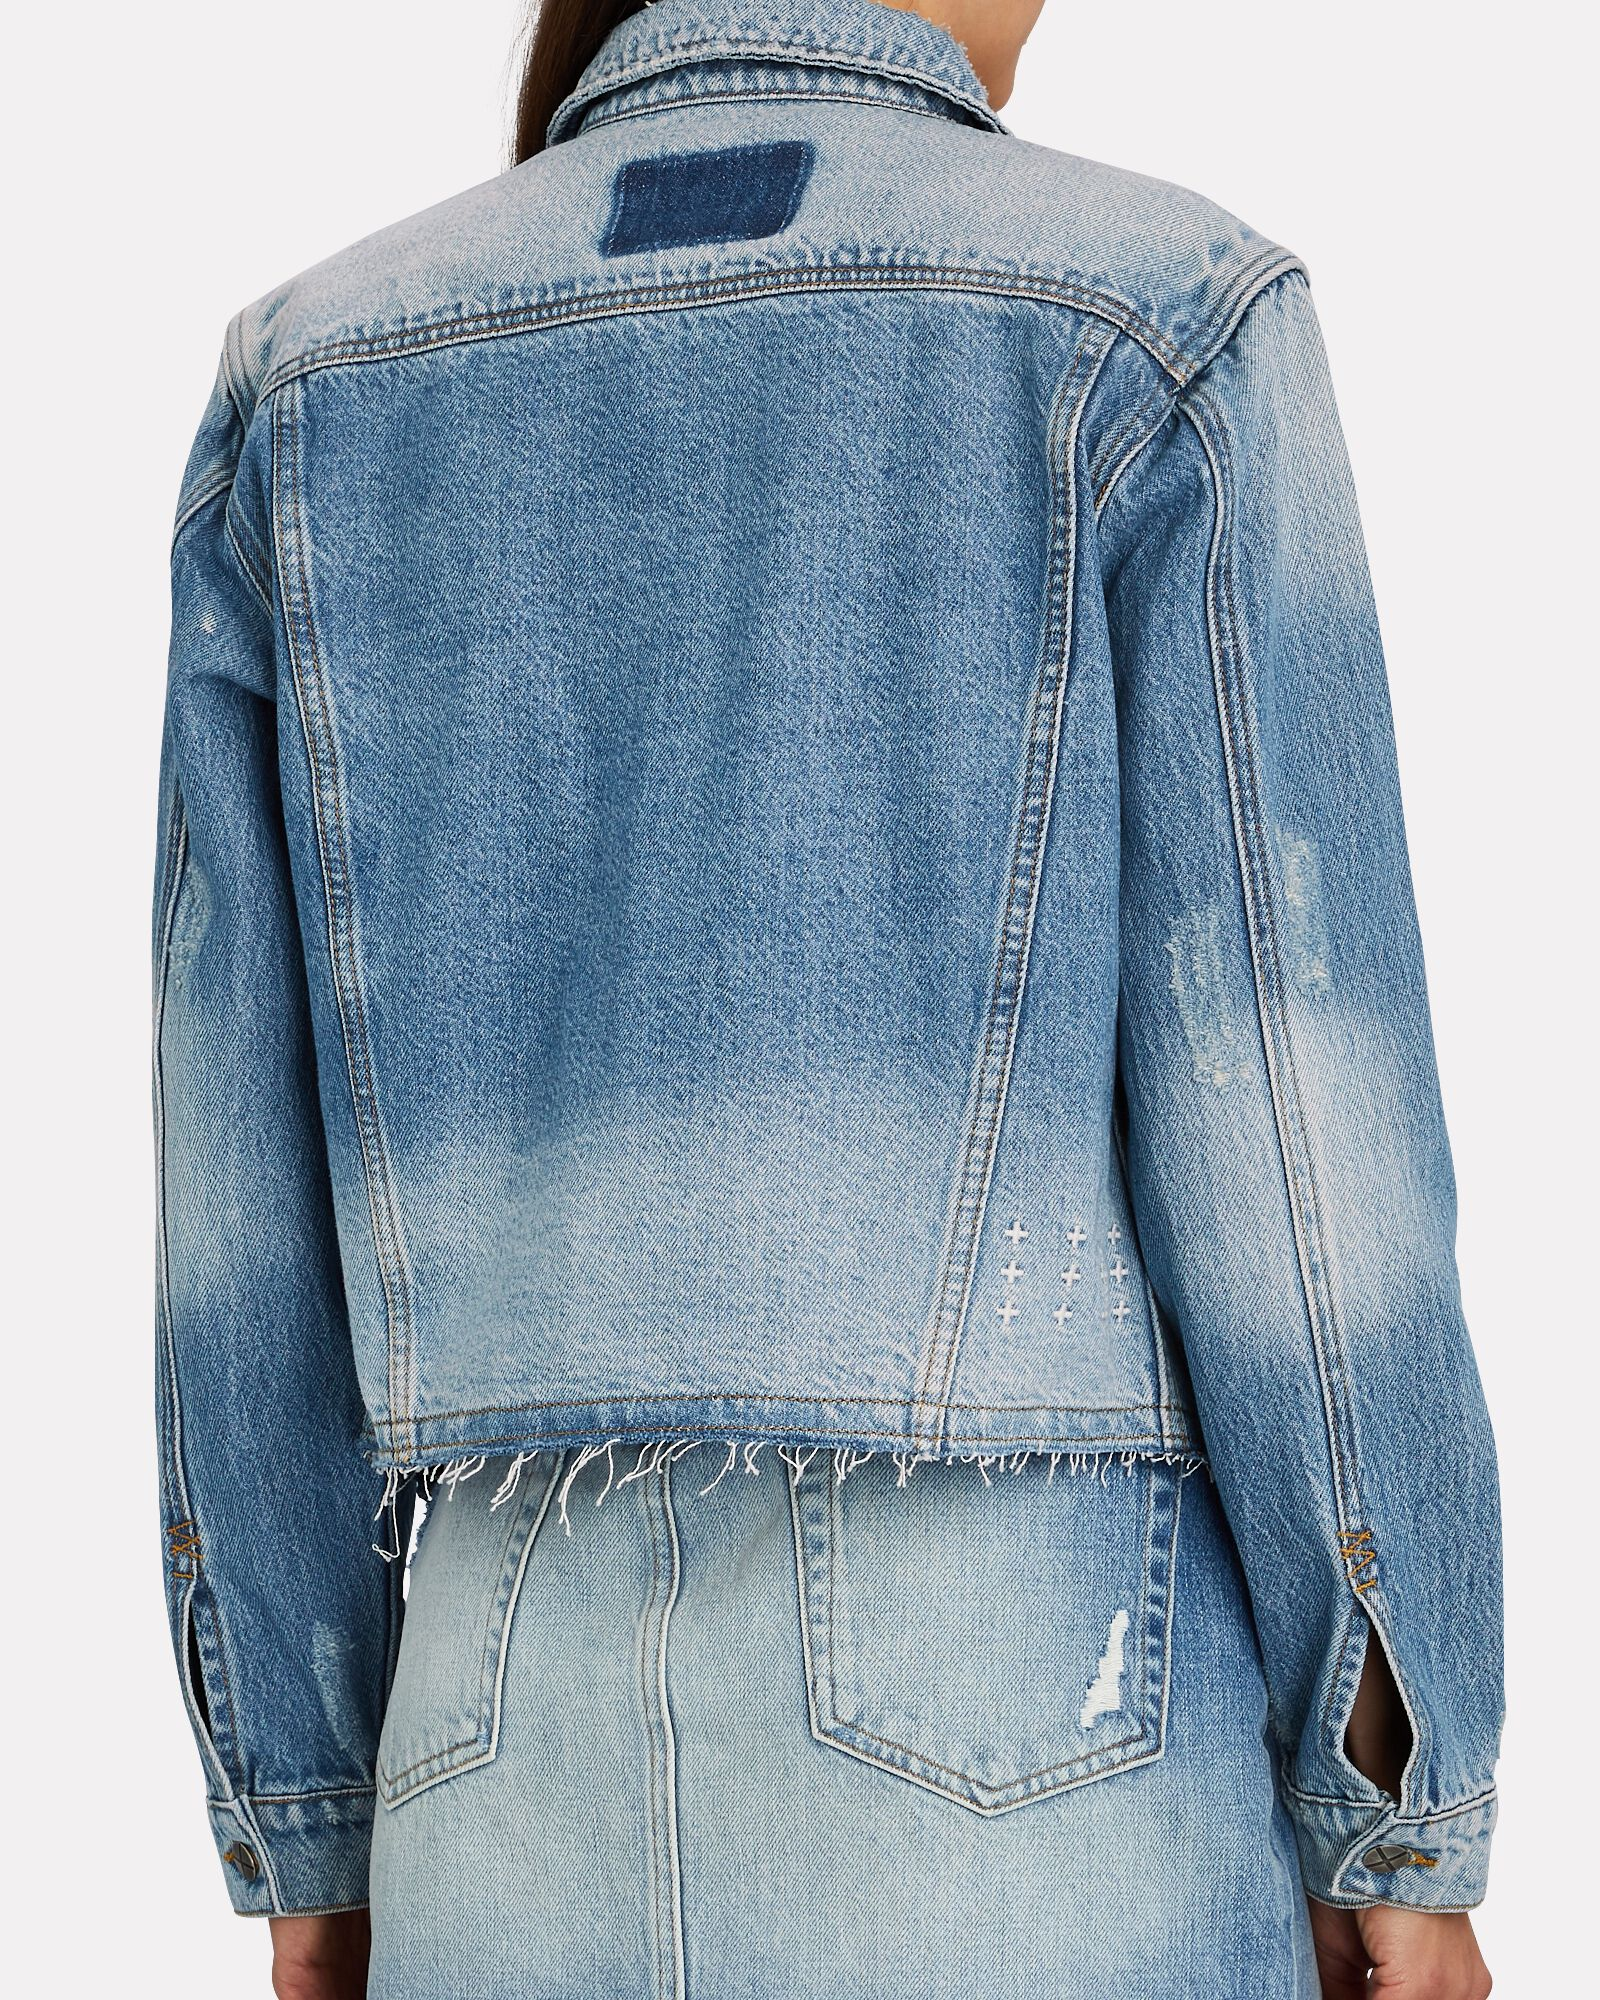 Tour Stonewashed Denim Jacket, TRUE VINTAGE, hi-res